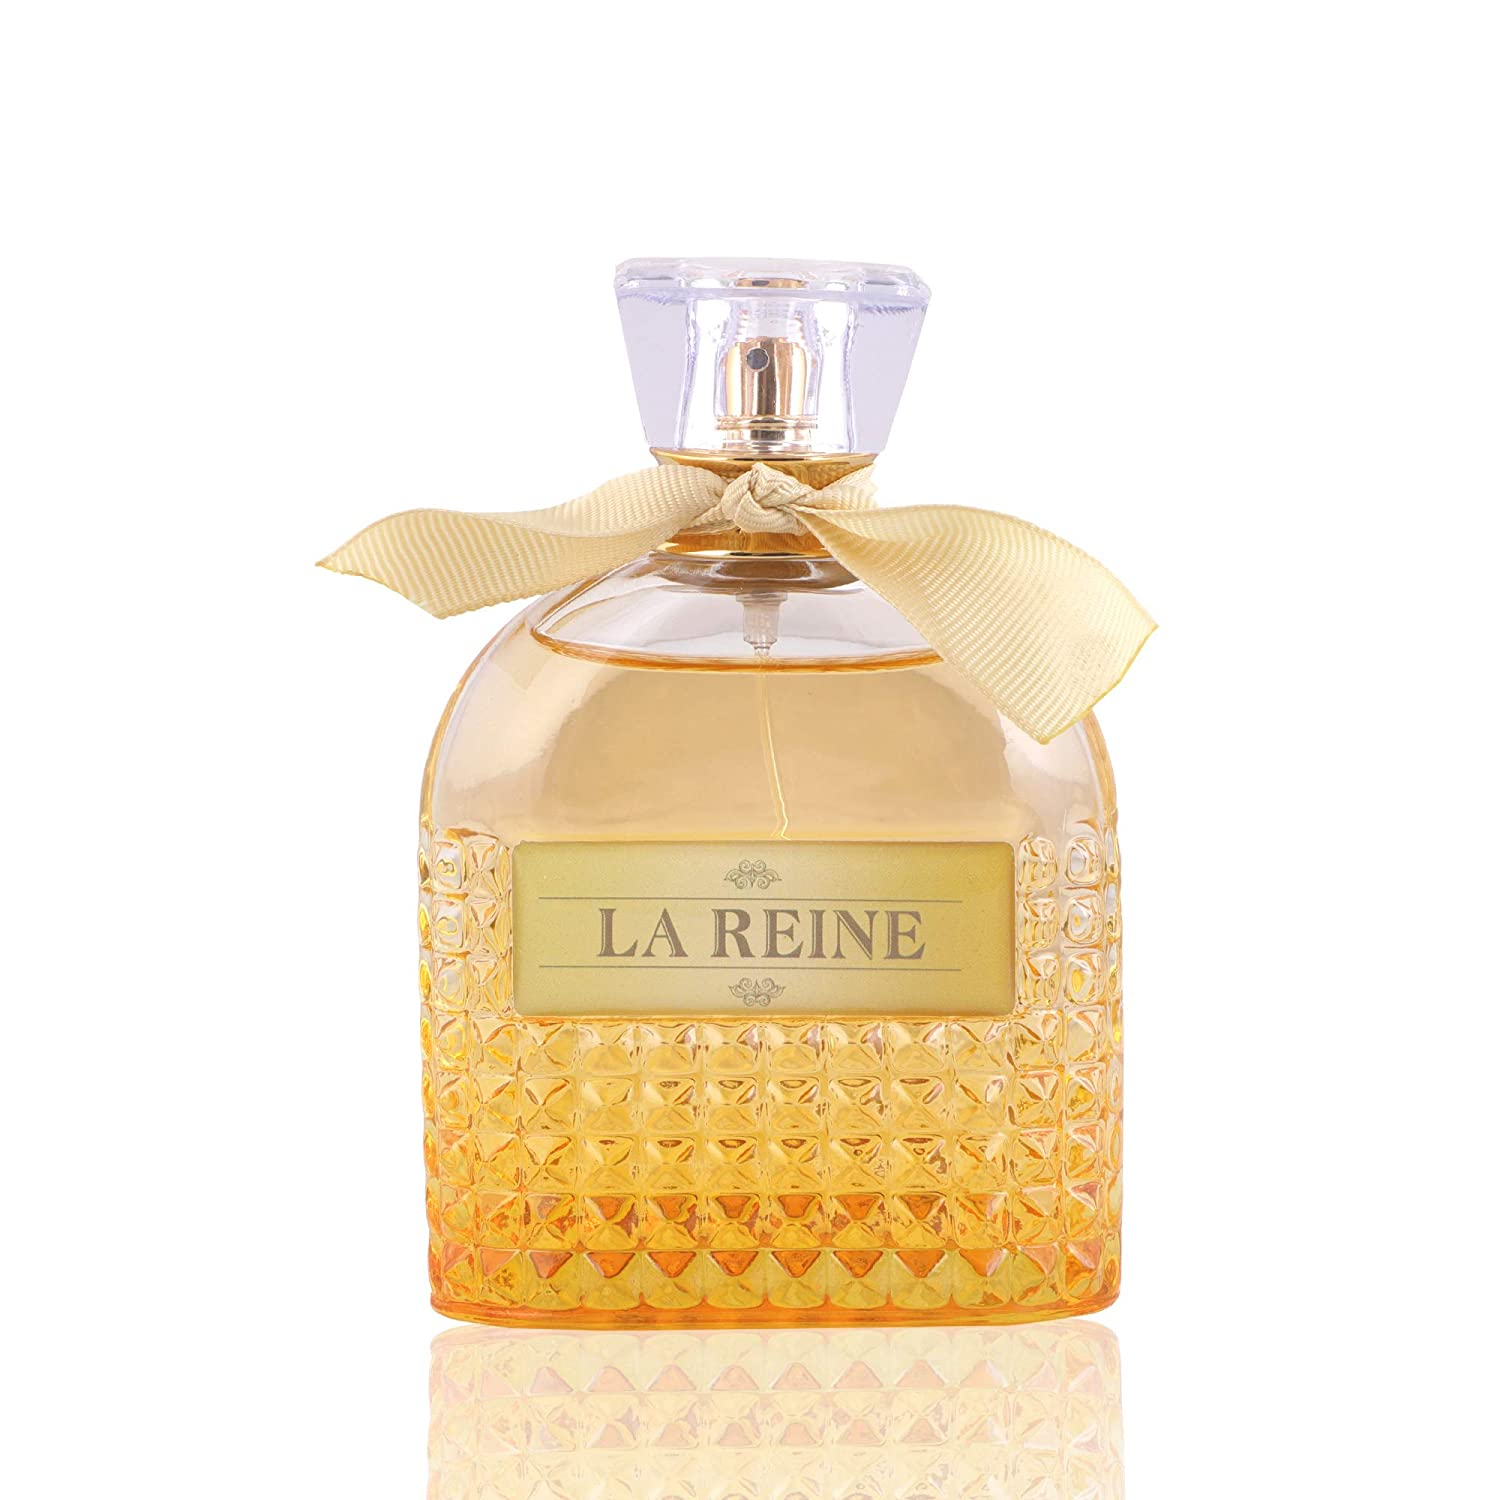 Gaurance Perfume for Women, Long Lasting Luxury French Fragrance